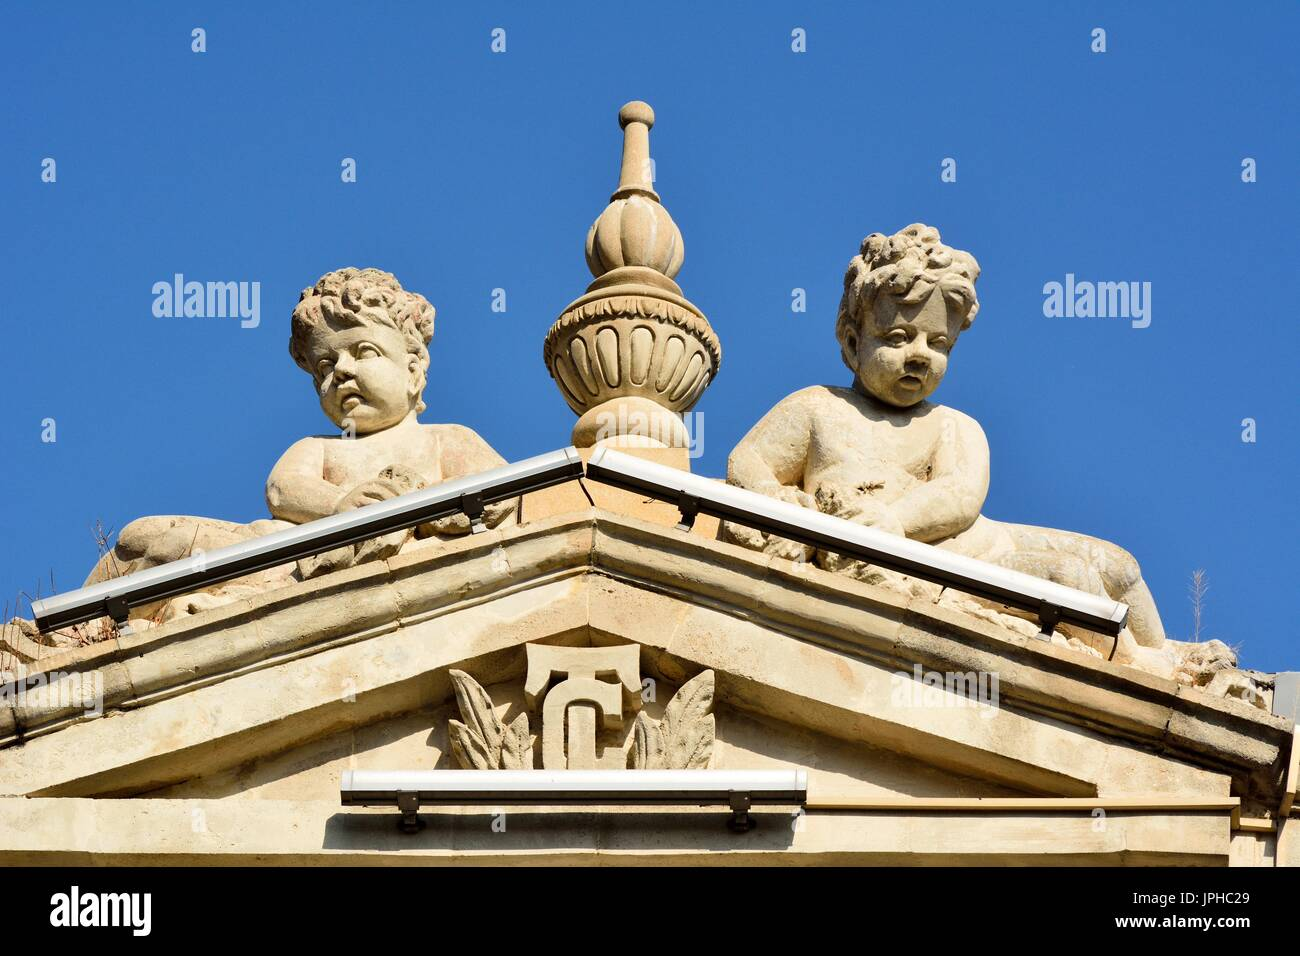 Sculptures of angel boys on facade of architectural building in downtown Baku. - Stock Image